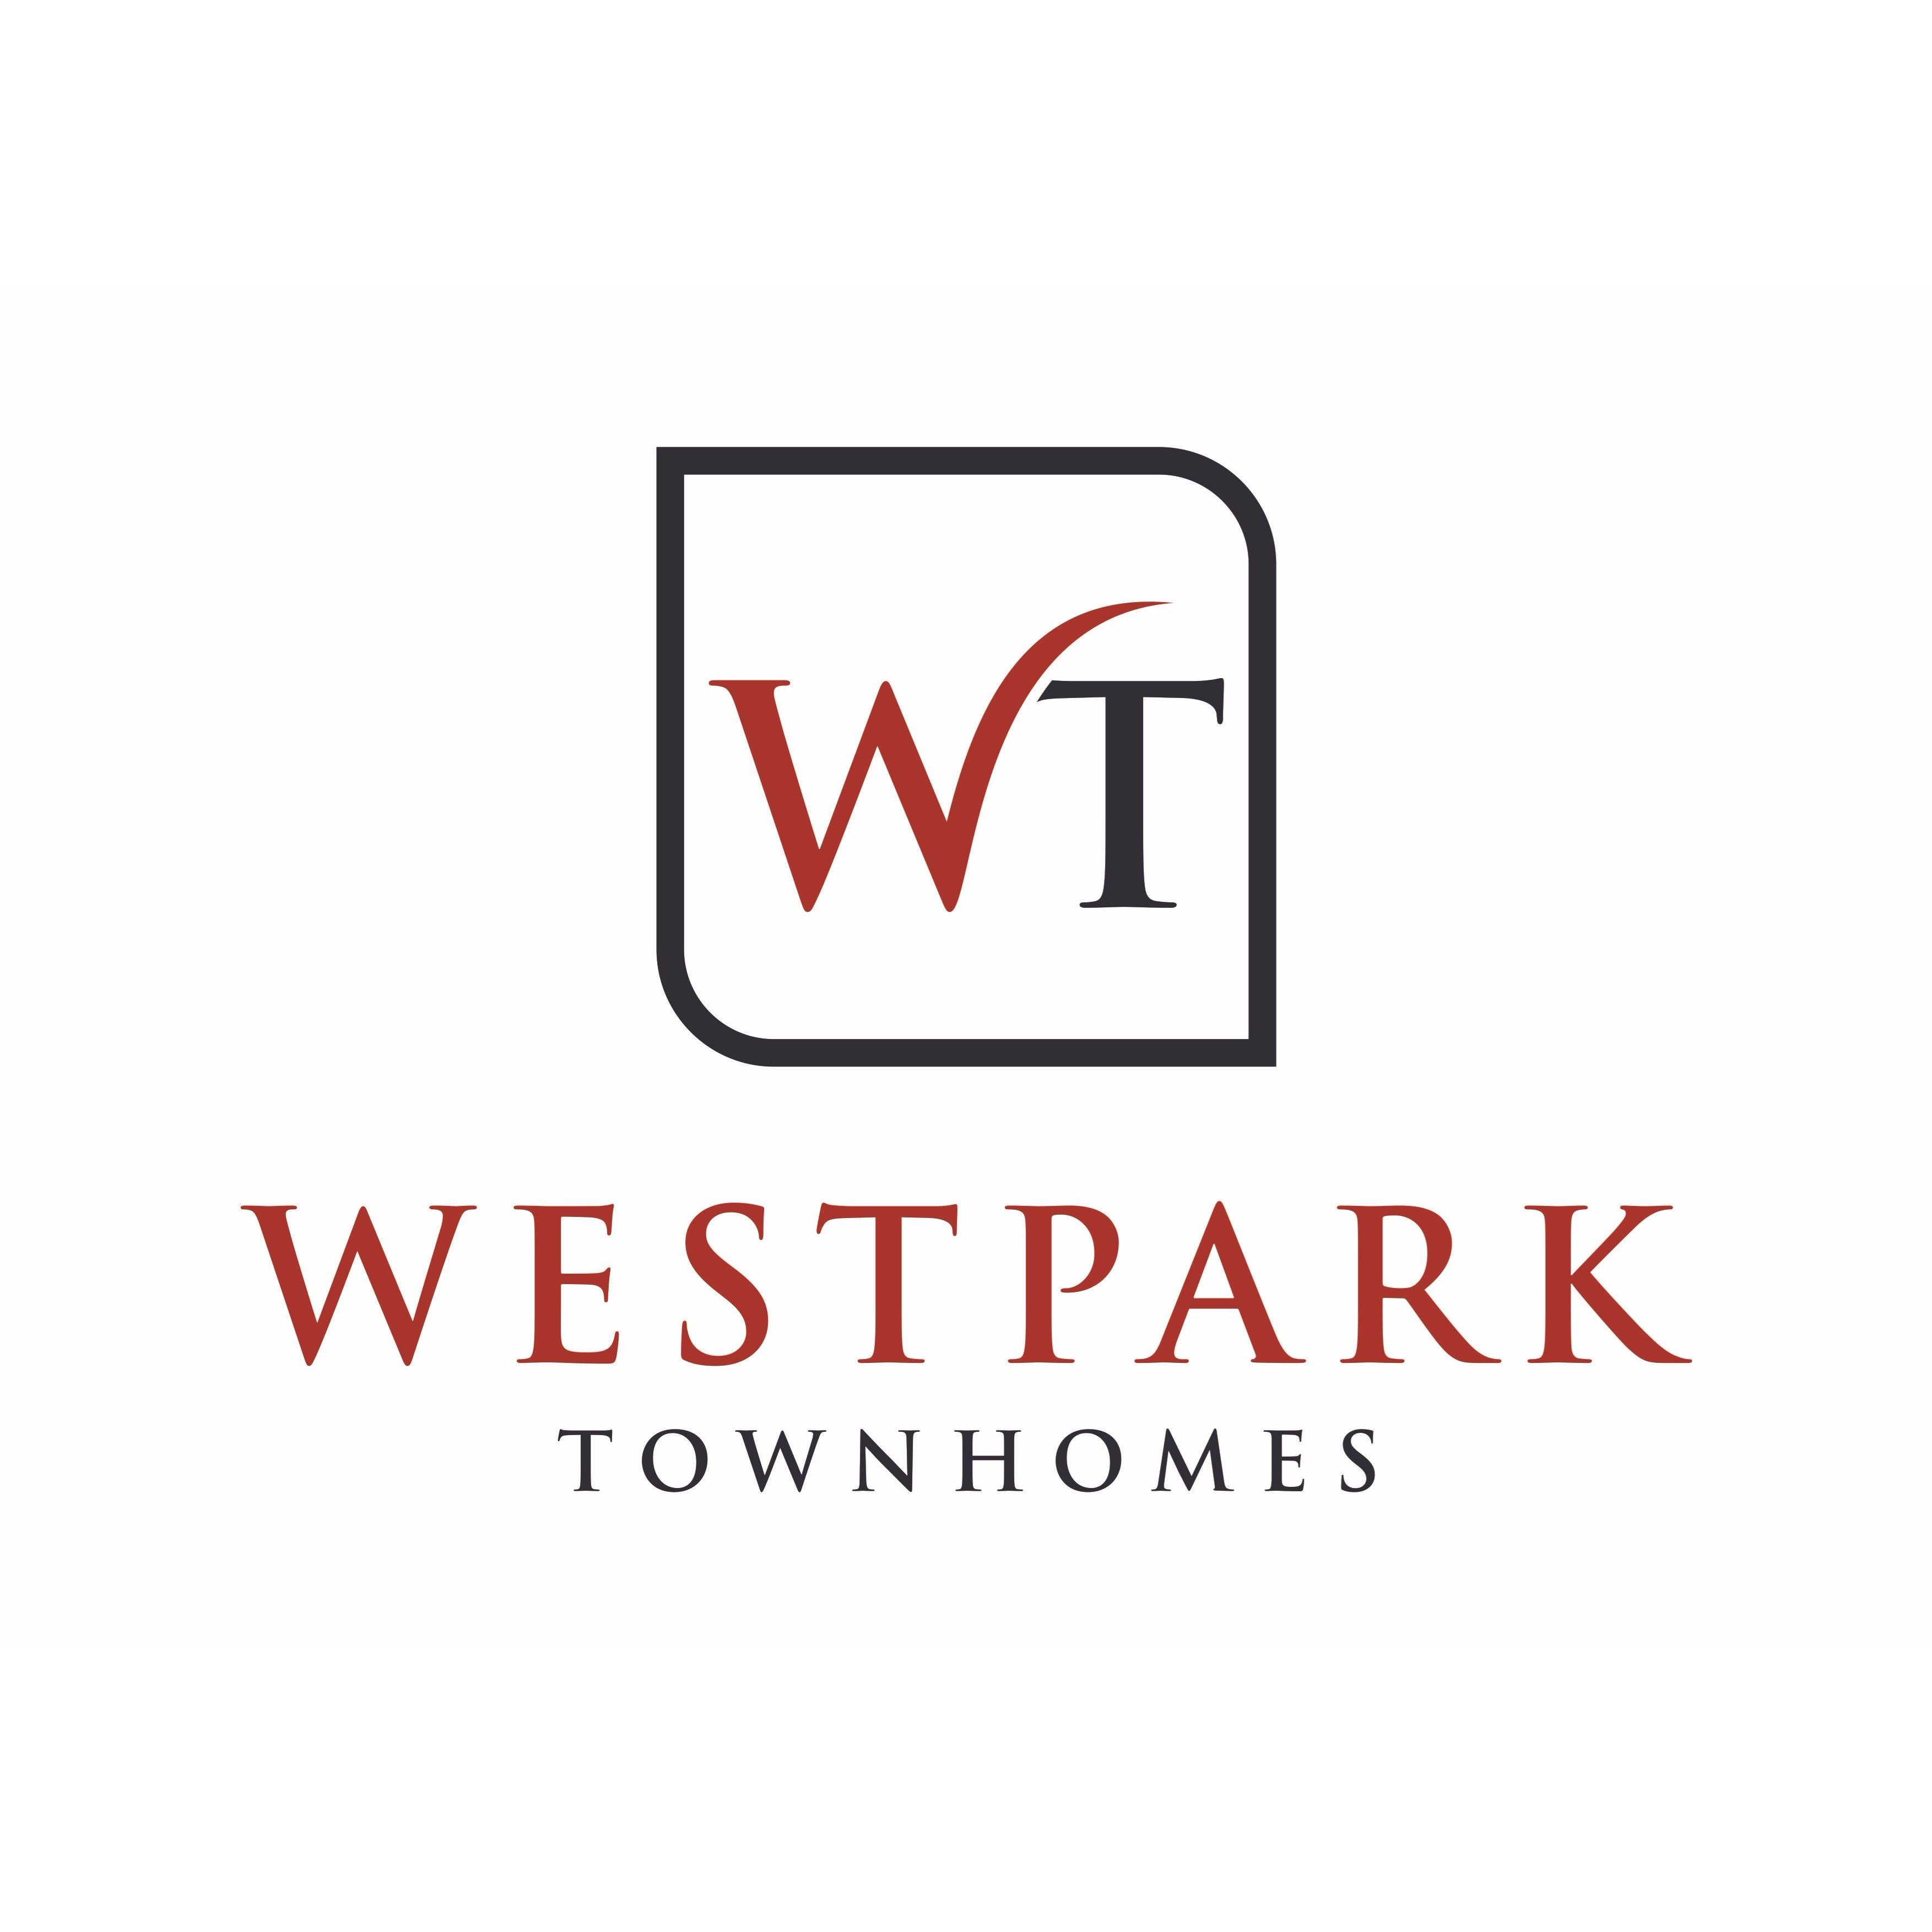 WestPark Townhomes